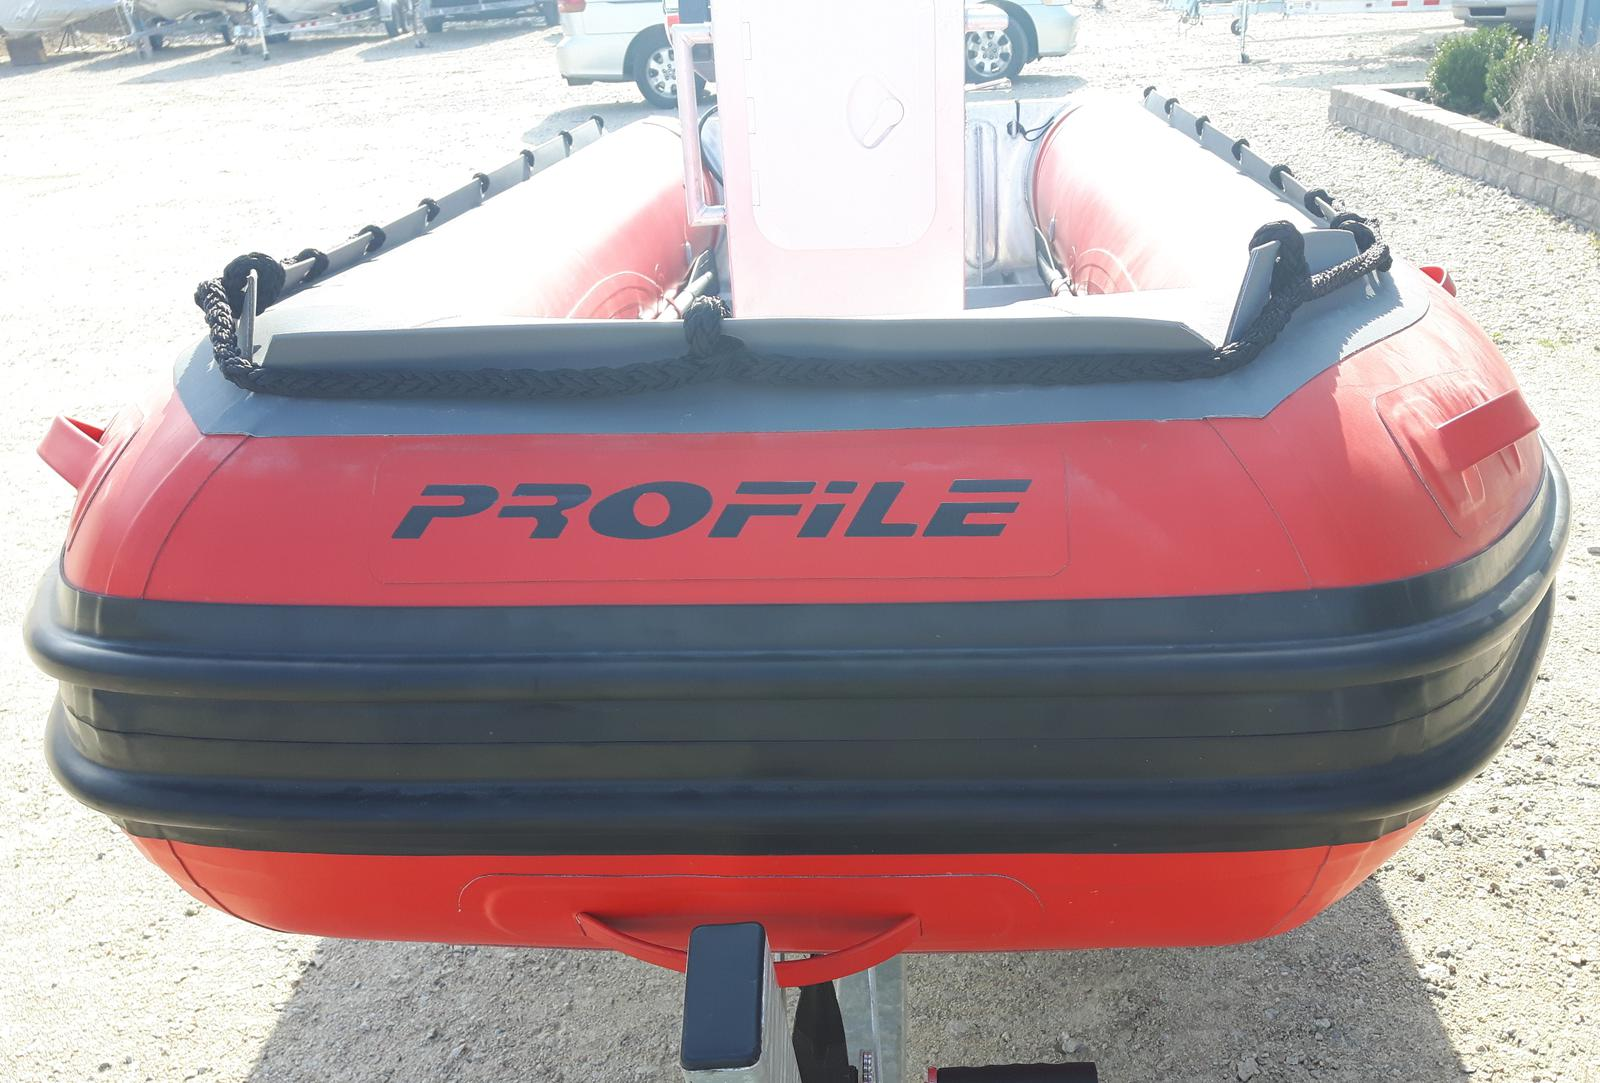 2017 AB Inflatables Profile A14 S for sale in Mahone Bay, NS